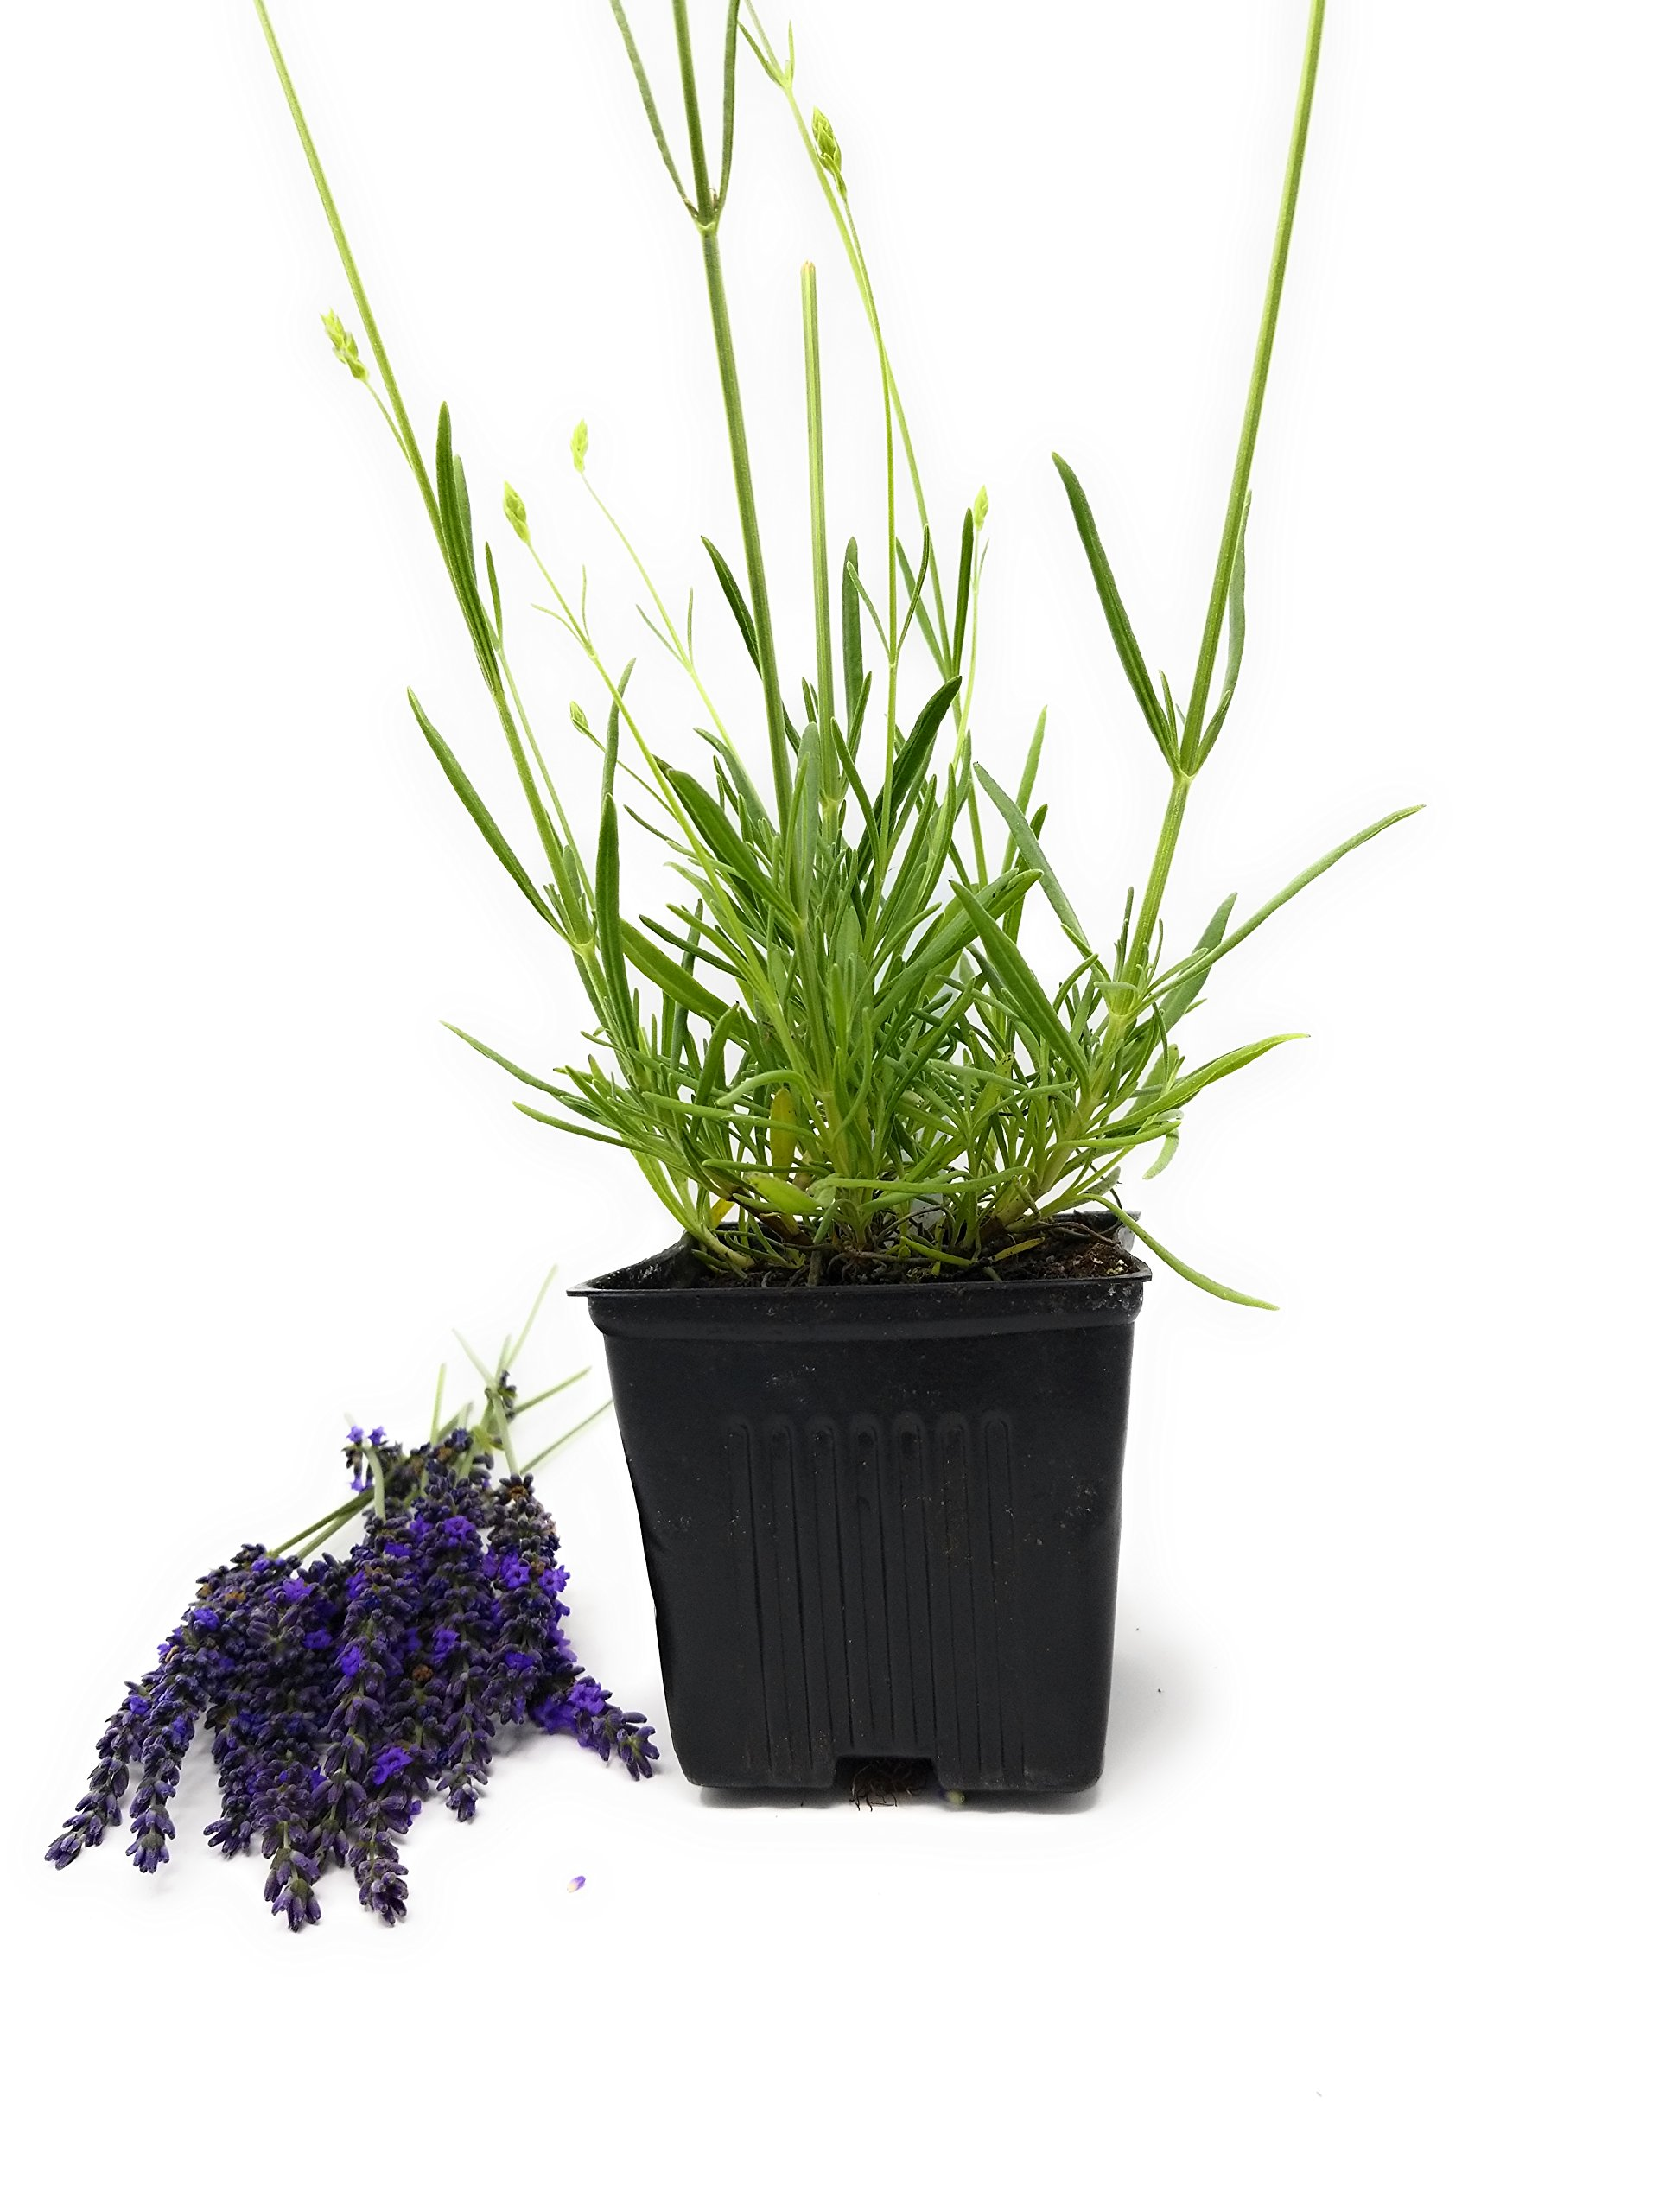 Findlavender - Lavender Plant Phenomenal (Blue Flowers) - 1Qt Size Pot - Zones 5-11 - Bee Friendly - Attract Butterfly - Evergreen Plant - 1 Live Plant by Findlavender